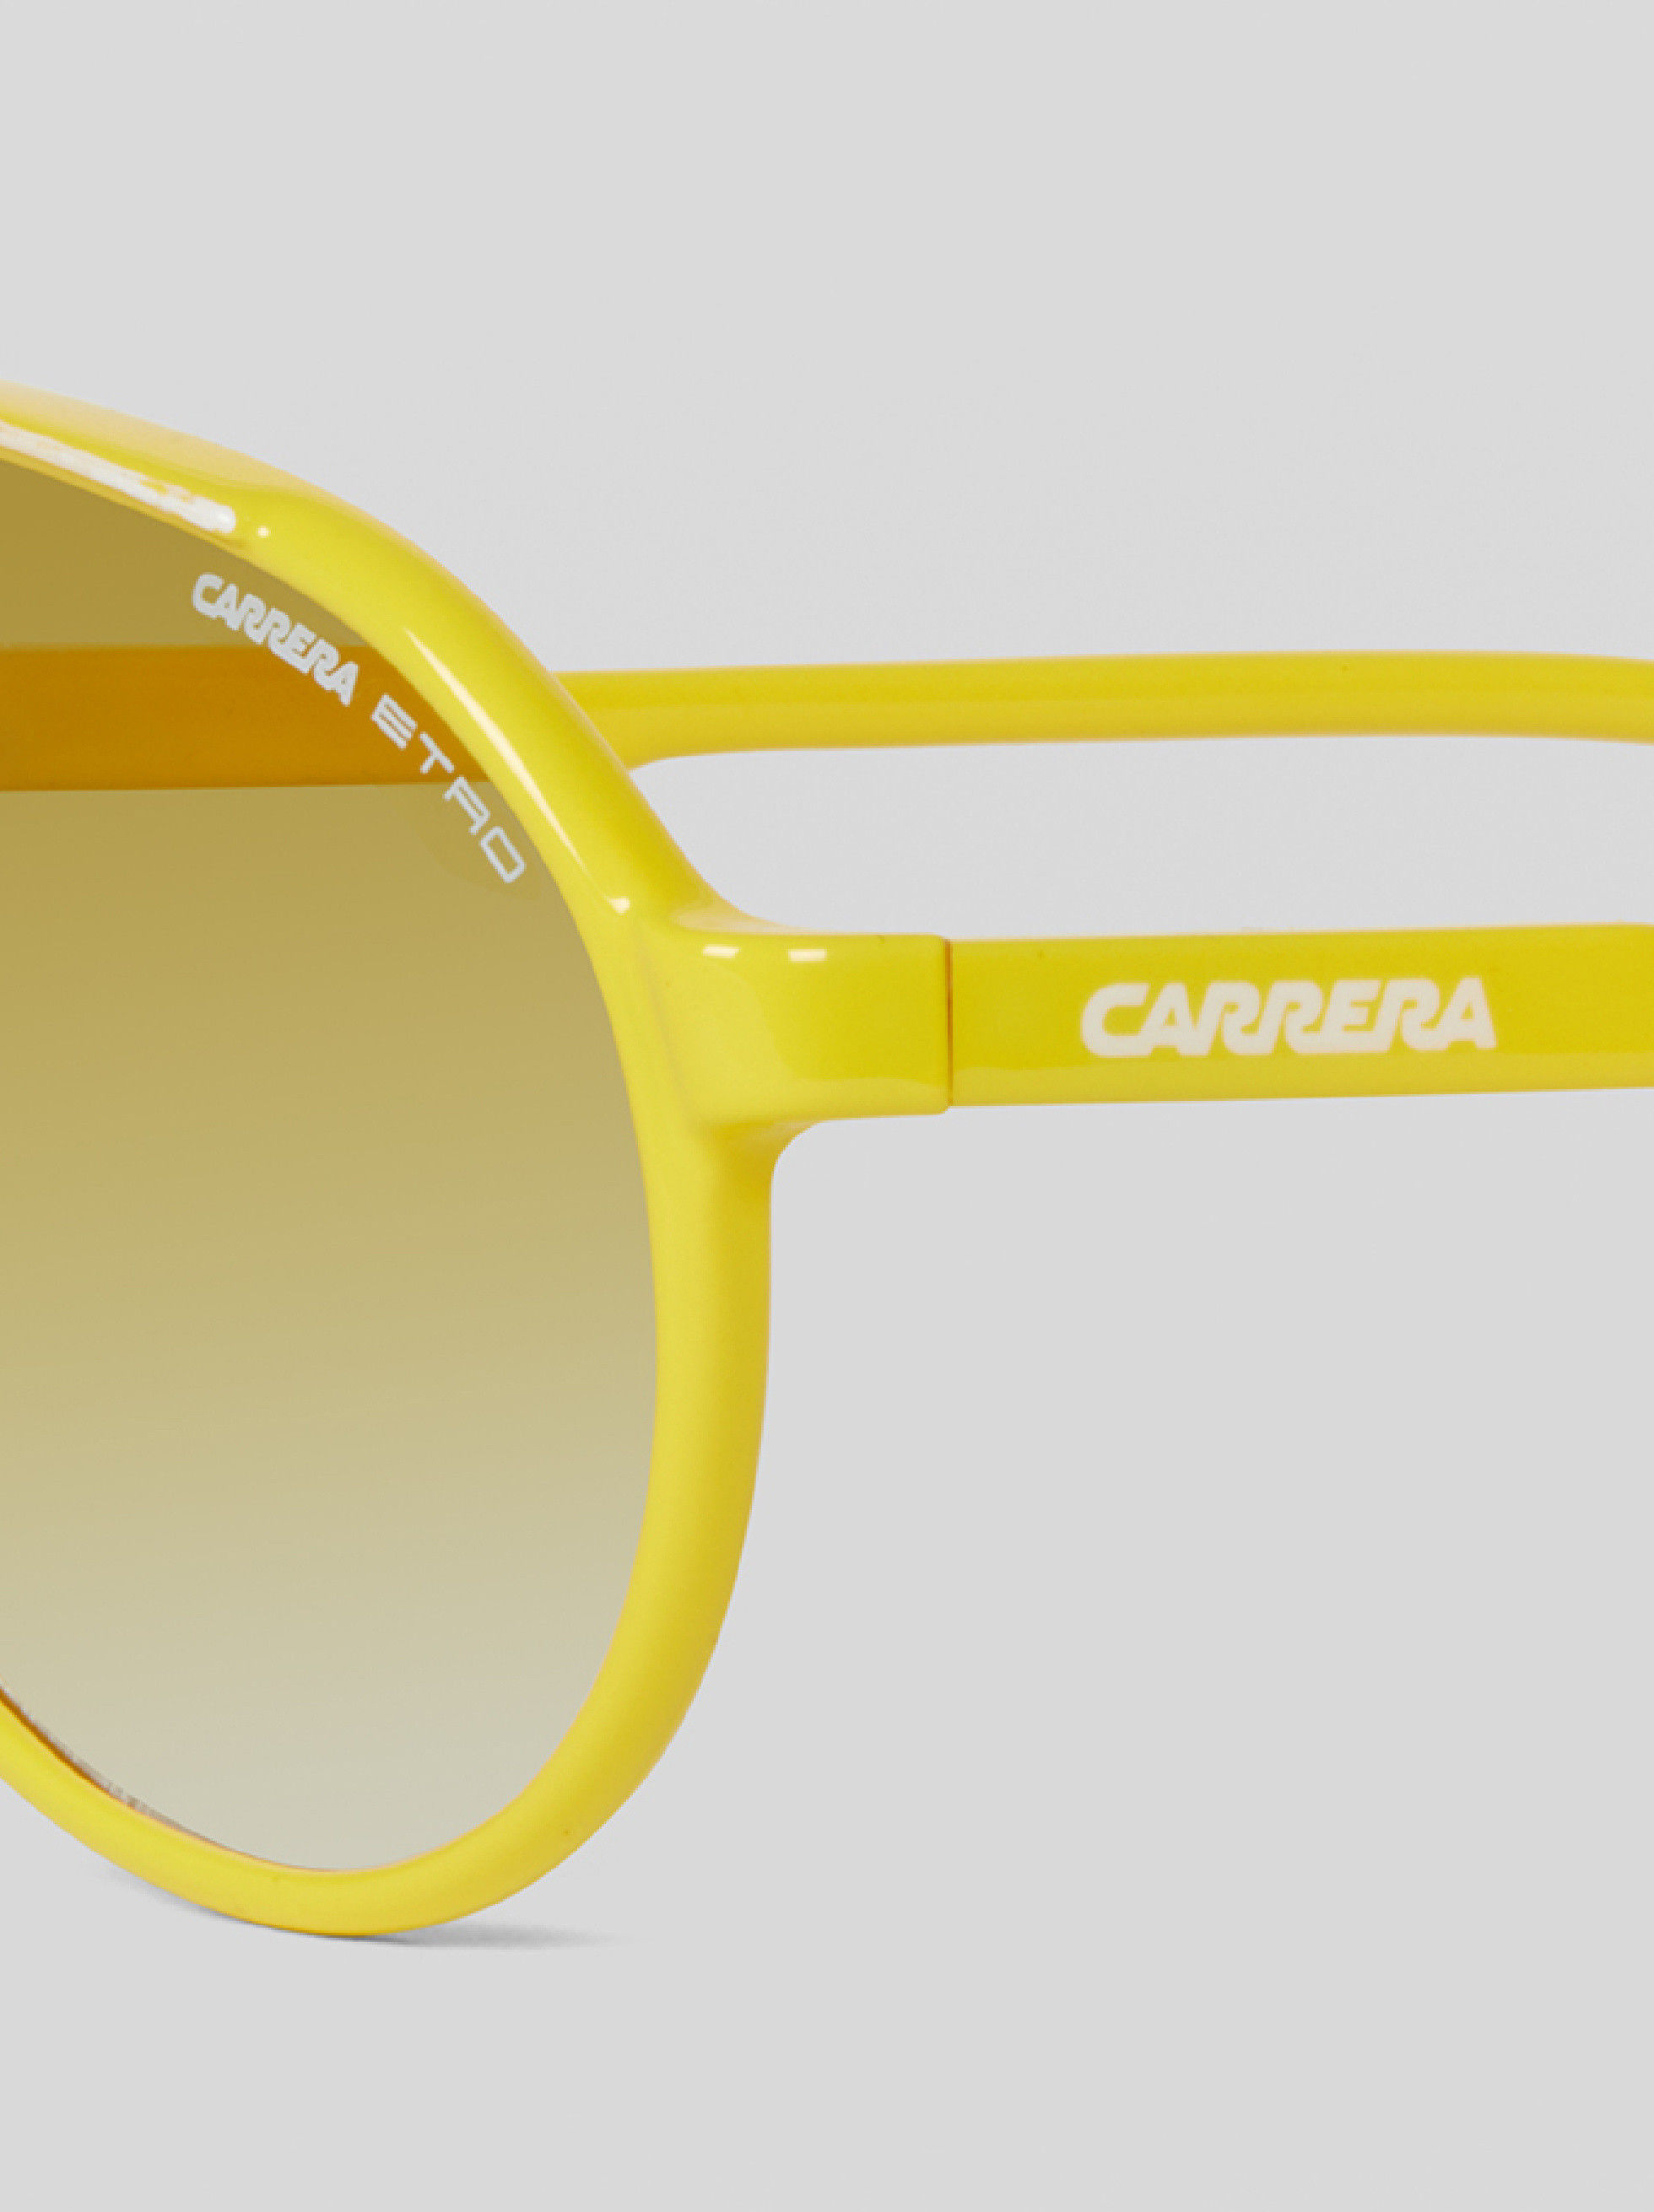 ETRO X CARRERA SUNGLASSES